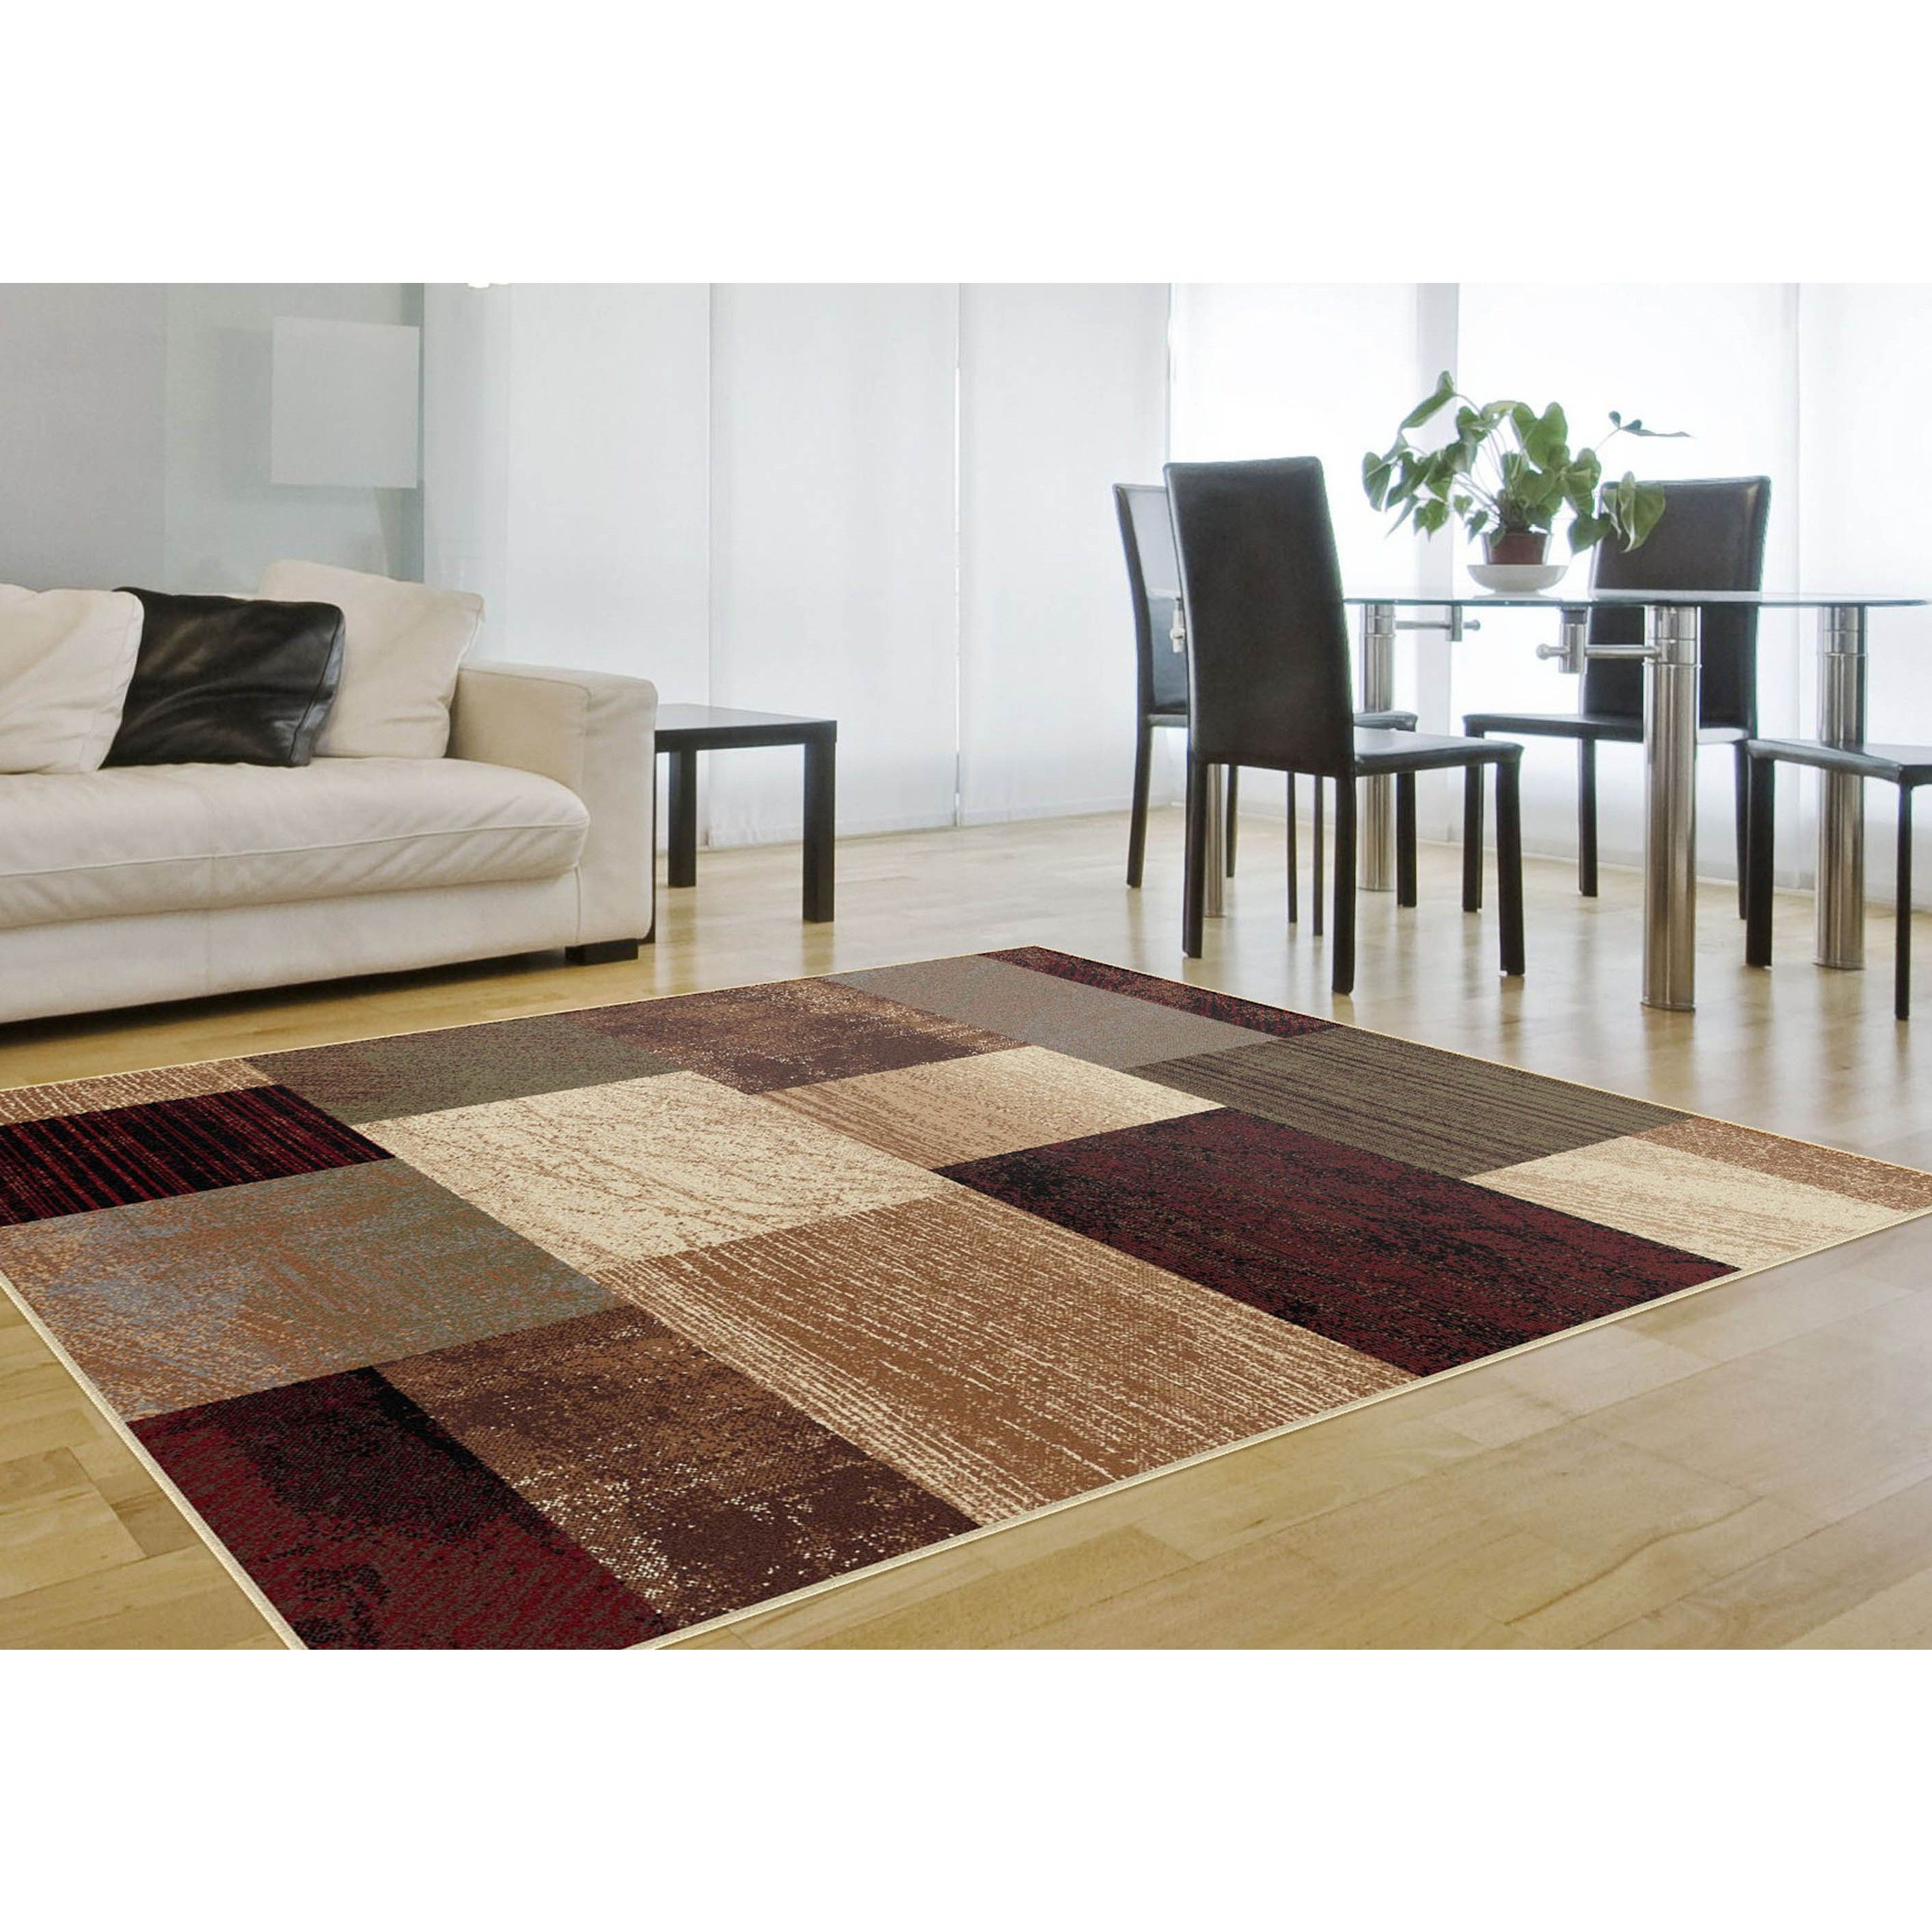 Awesome 5 7 Area Rugs Reference Enchanting Rug Reference